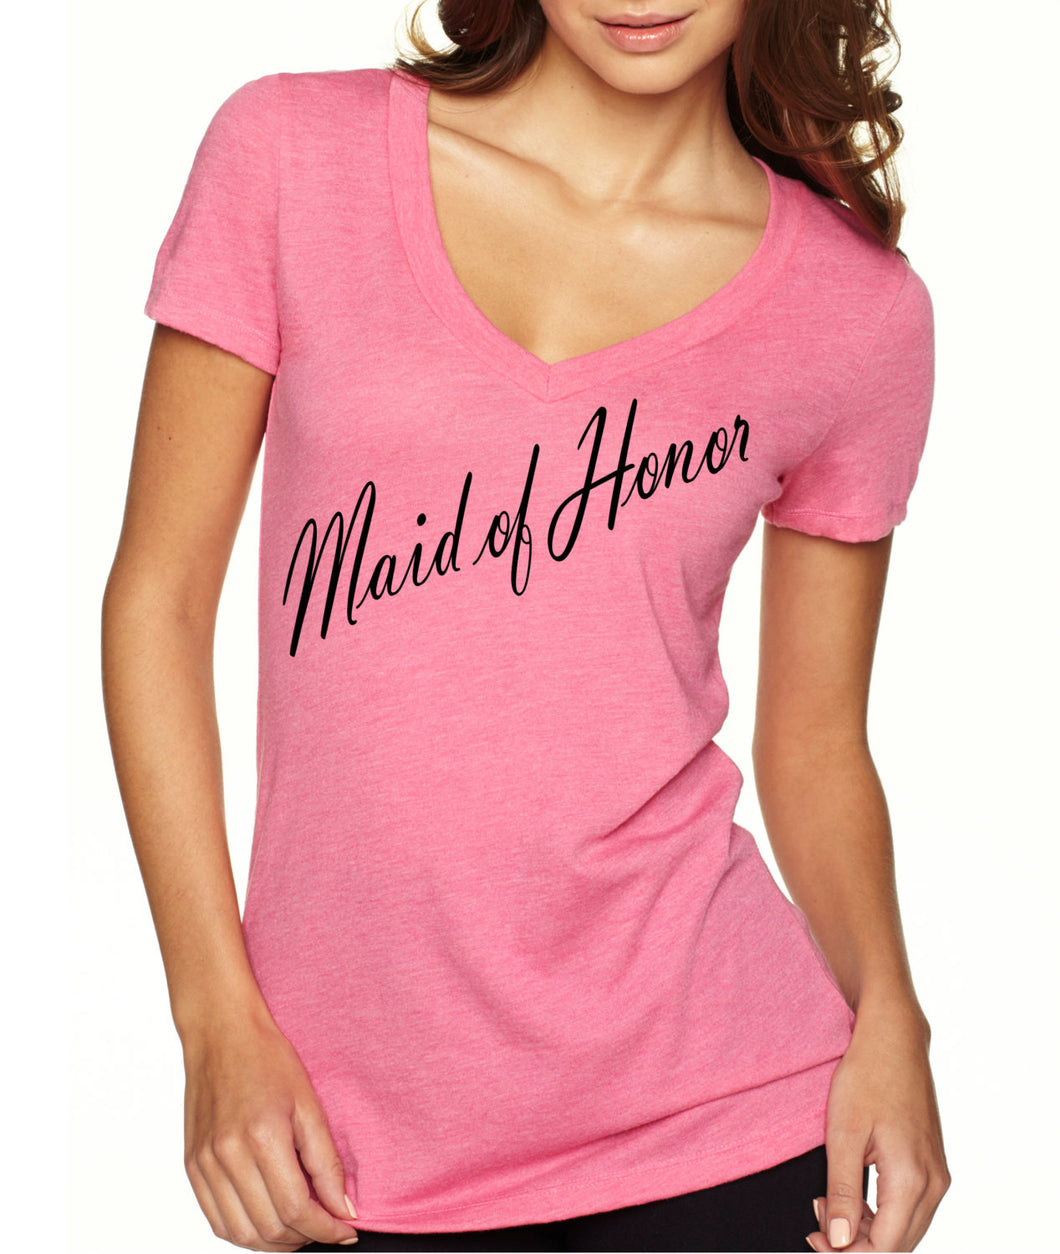 maid of honor shirt heather gray v neck shirts wifey bridal